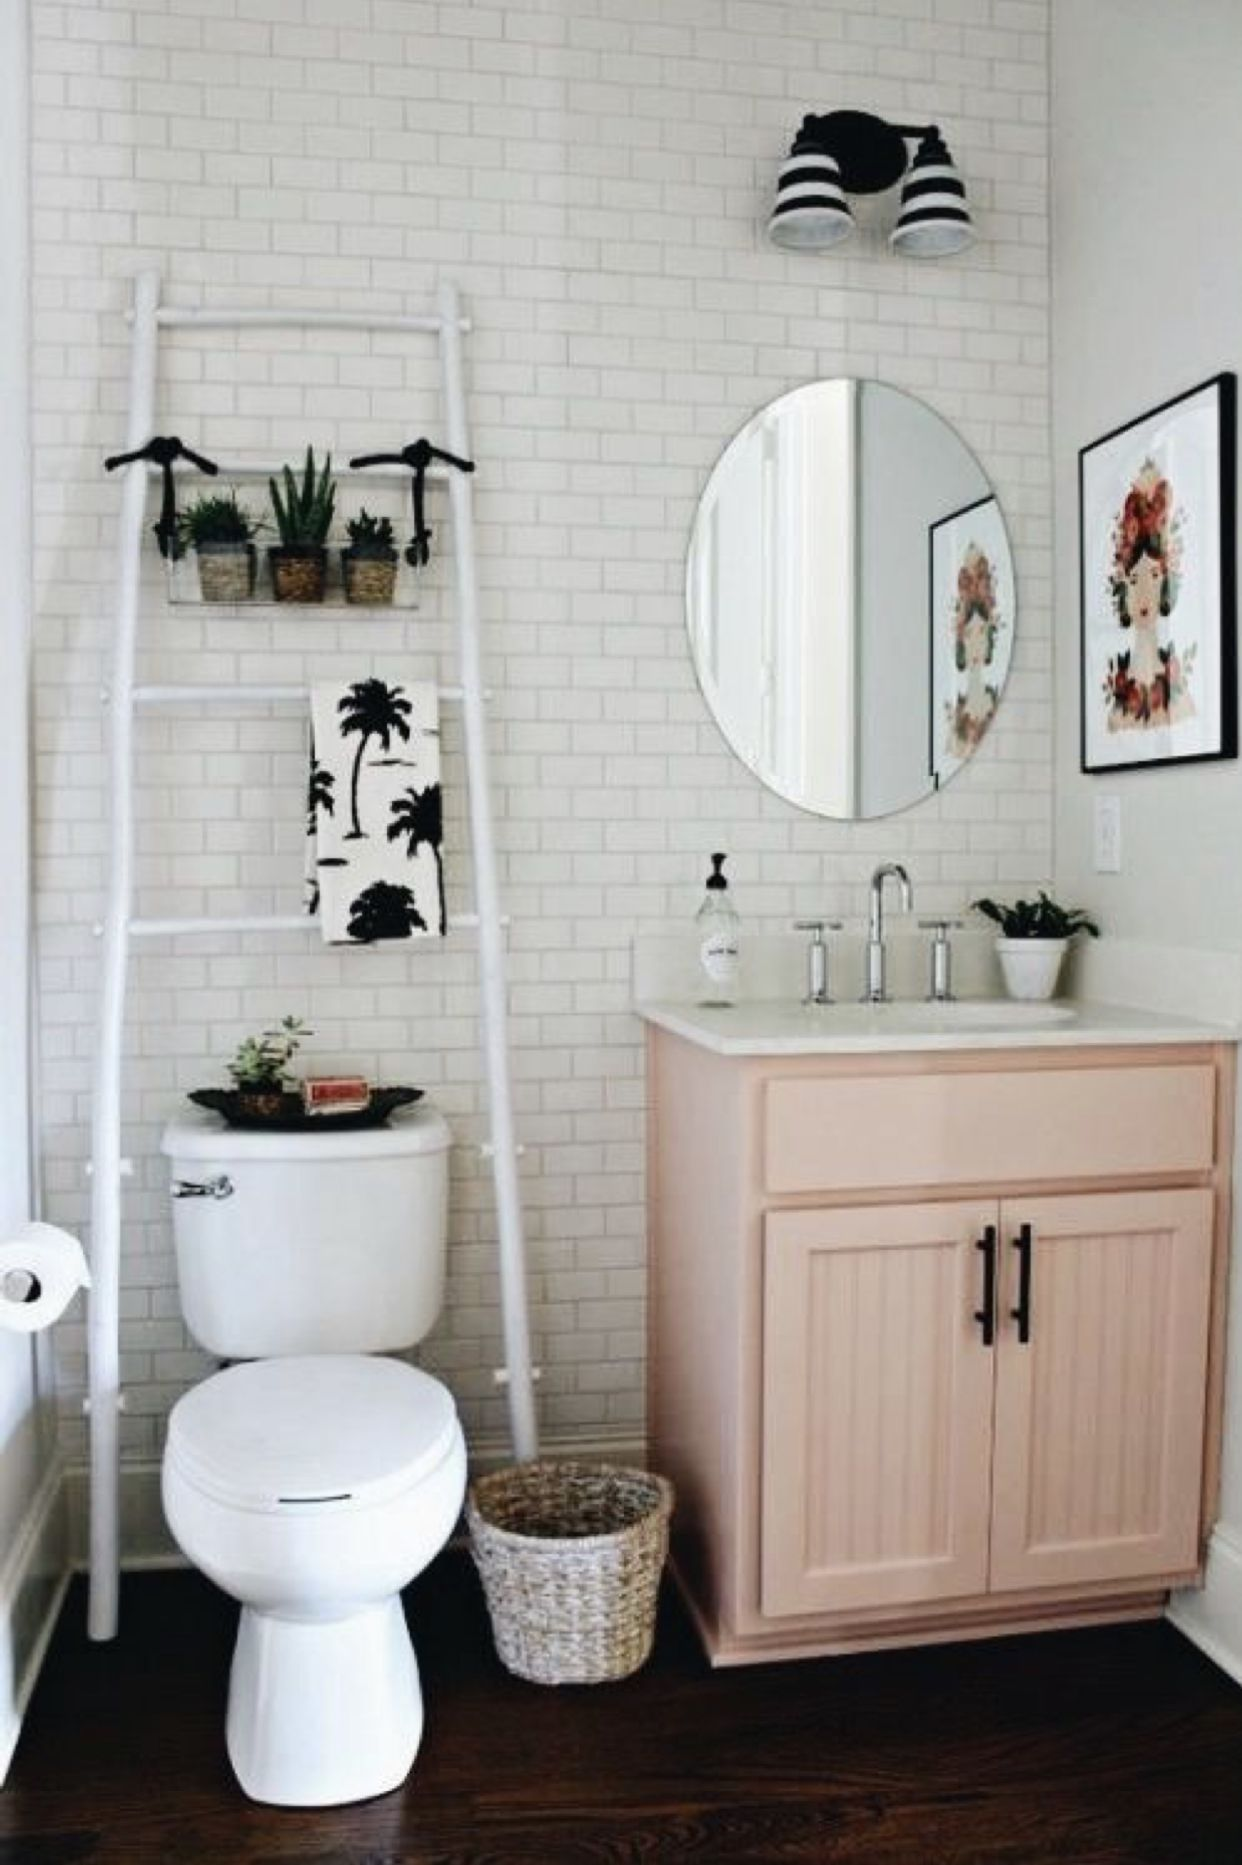 Pinterest ιѕåвєℓℓå ℓιåиg Diy Bathroom Small Bathroom Diy Bathroom Decor